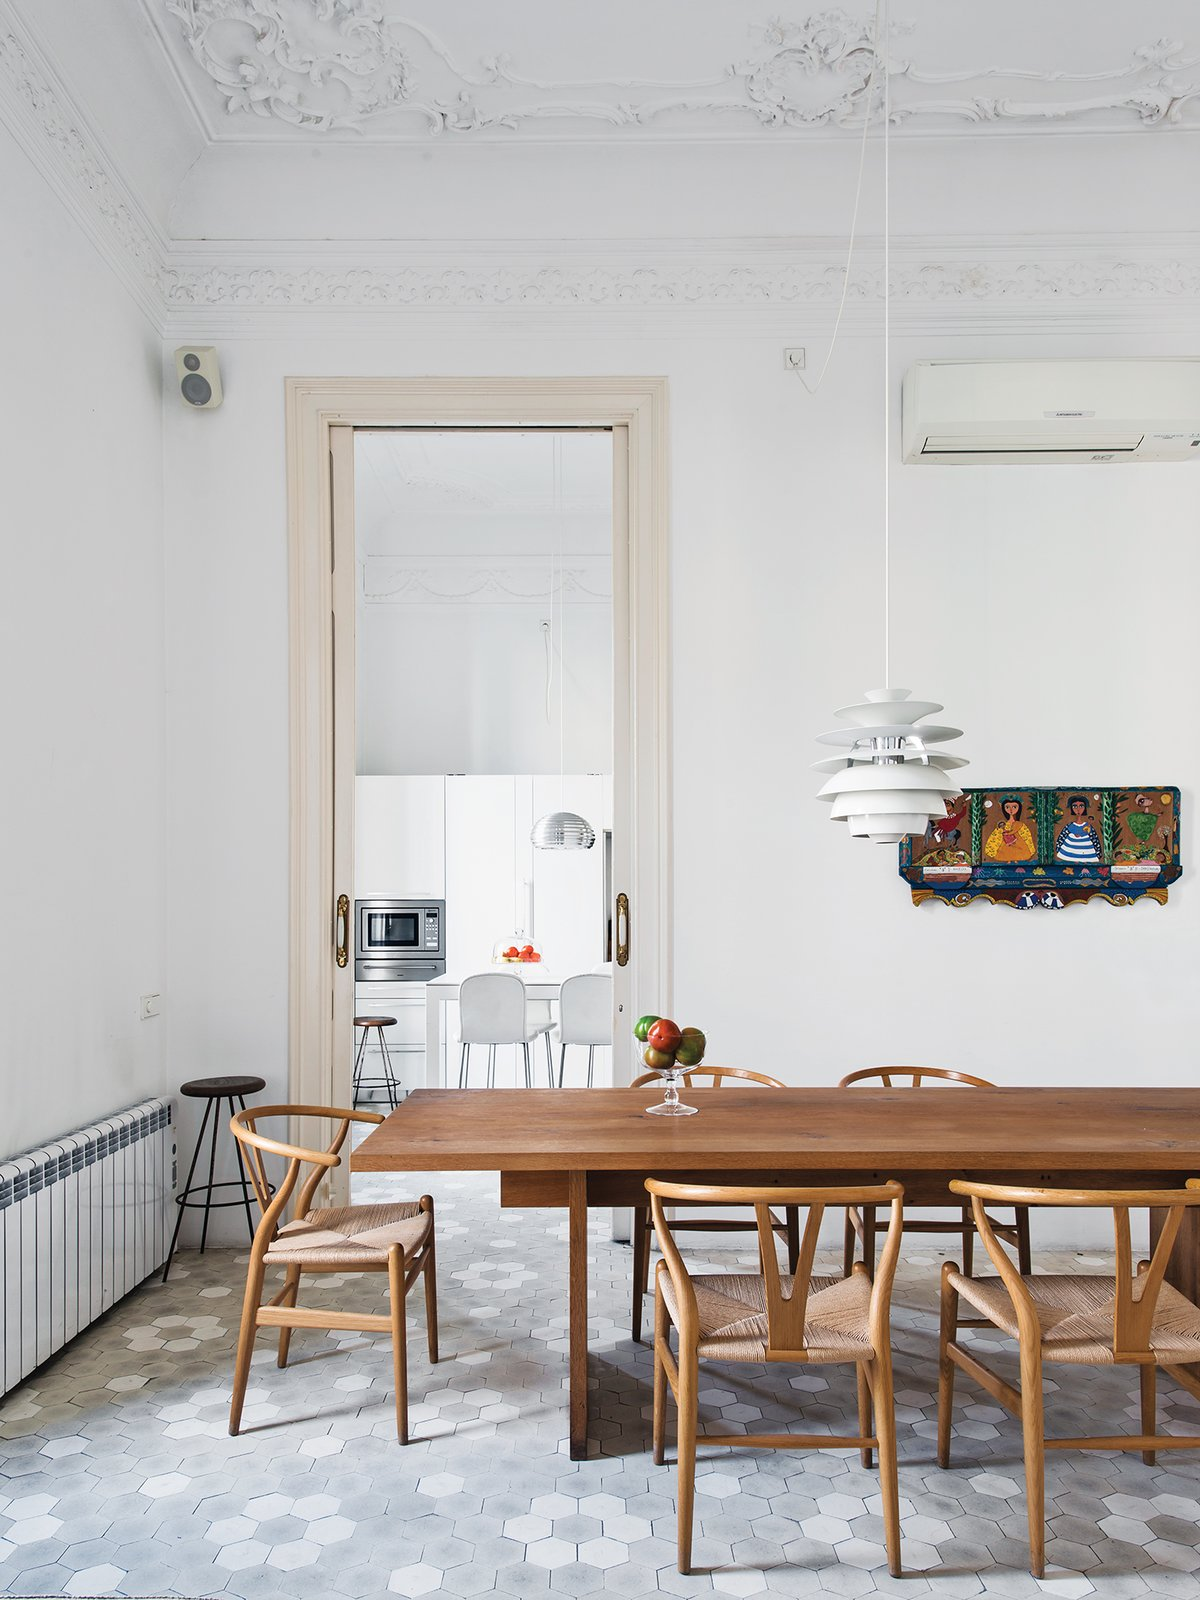 In the dining room, a Poul Henningsen lamp hovers over a table by Philipp Mainzer for E15, surrounded by Hans Wegner Wishbone chairs. The artwork is by Maria Sanchez. The designer added a Banco kitchen by Dada with Jasper Morrison stools. Tagged: Dining Room, Chair, Table, Pendant Lighting, and Porcelain Tile Floor.  Photo 22 of 41 in 50 Dashing Dining Rooms from Love at First Sight